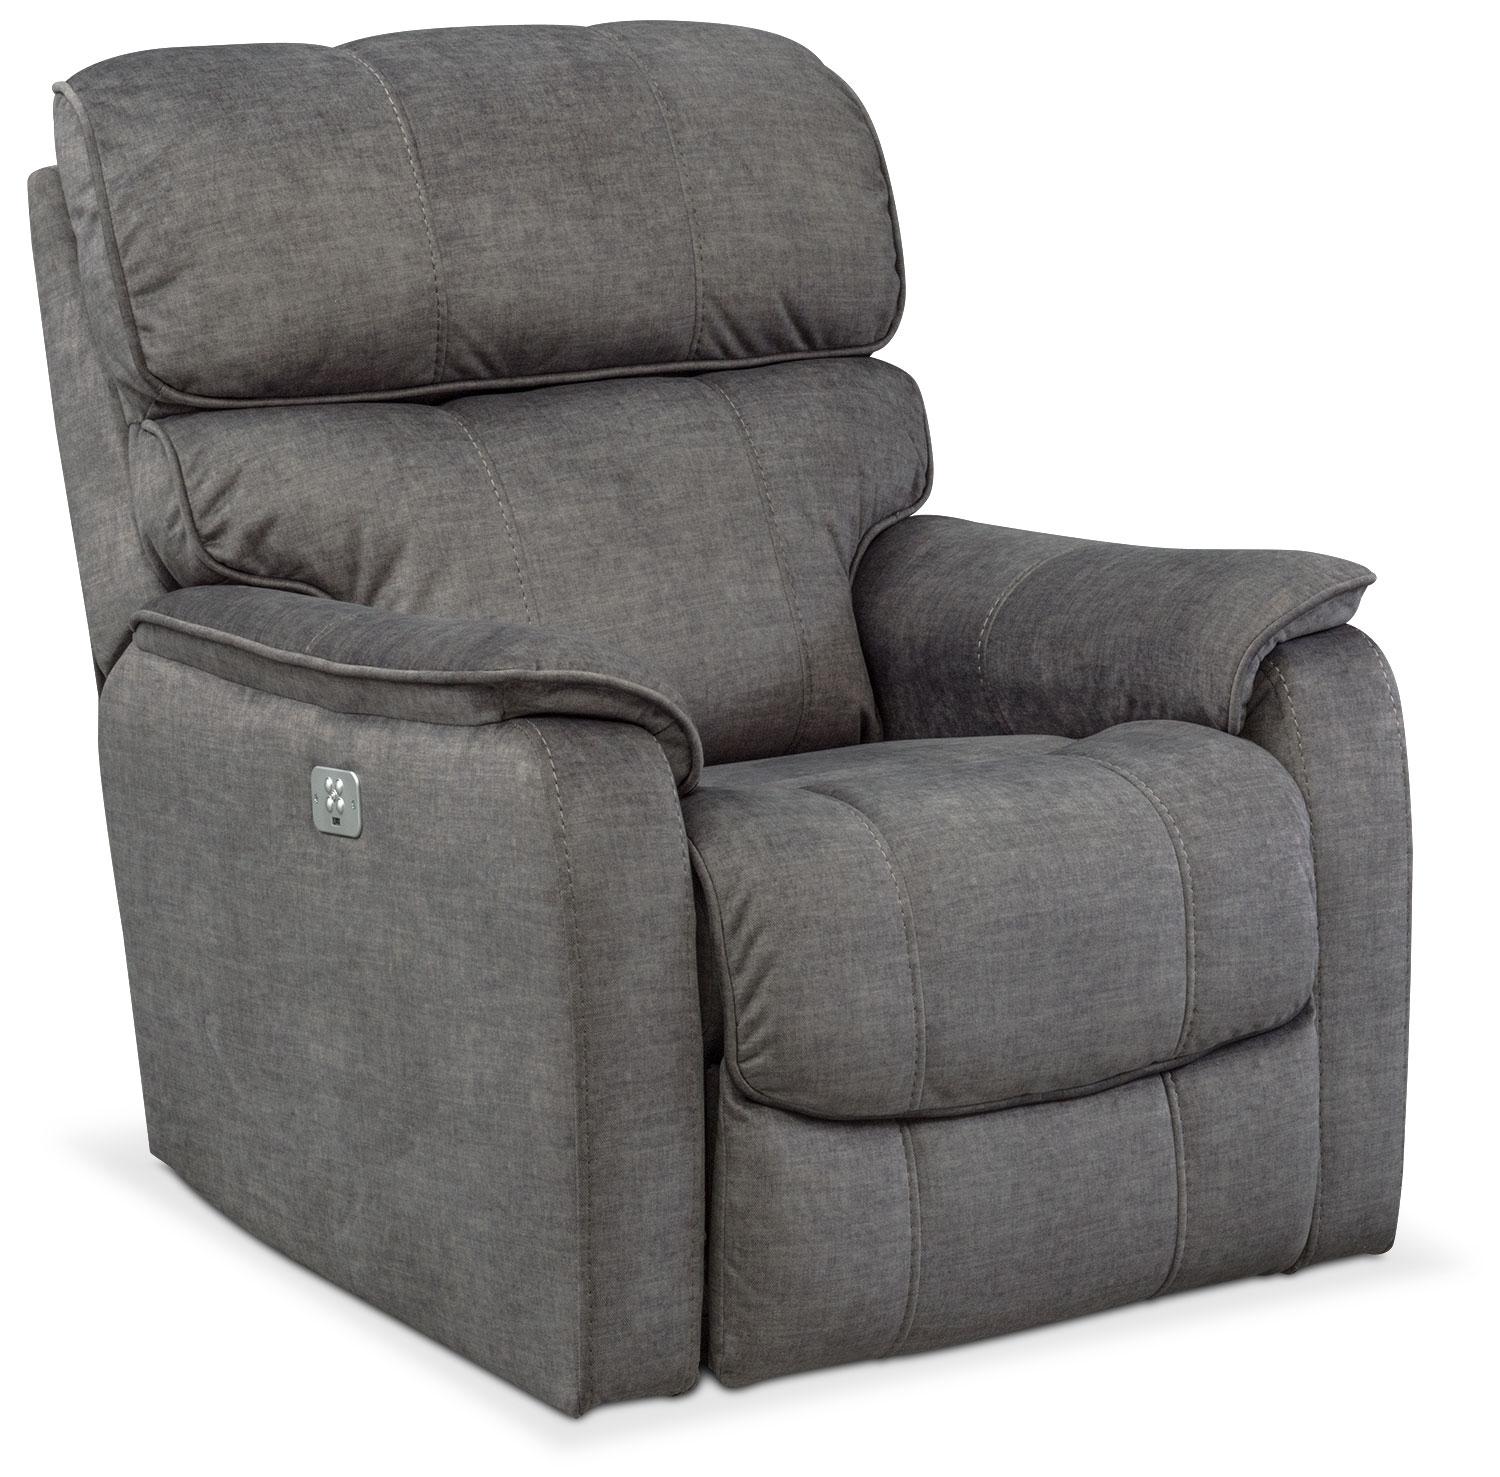 Recliners & Rockers | Value City Furniture | Value City Furniture Intended For Denali Light Grey 6 Piece Reclining Sectionals With 2 Power Headrests (View 21 of 25)